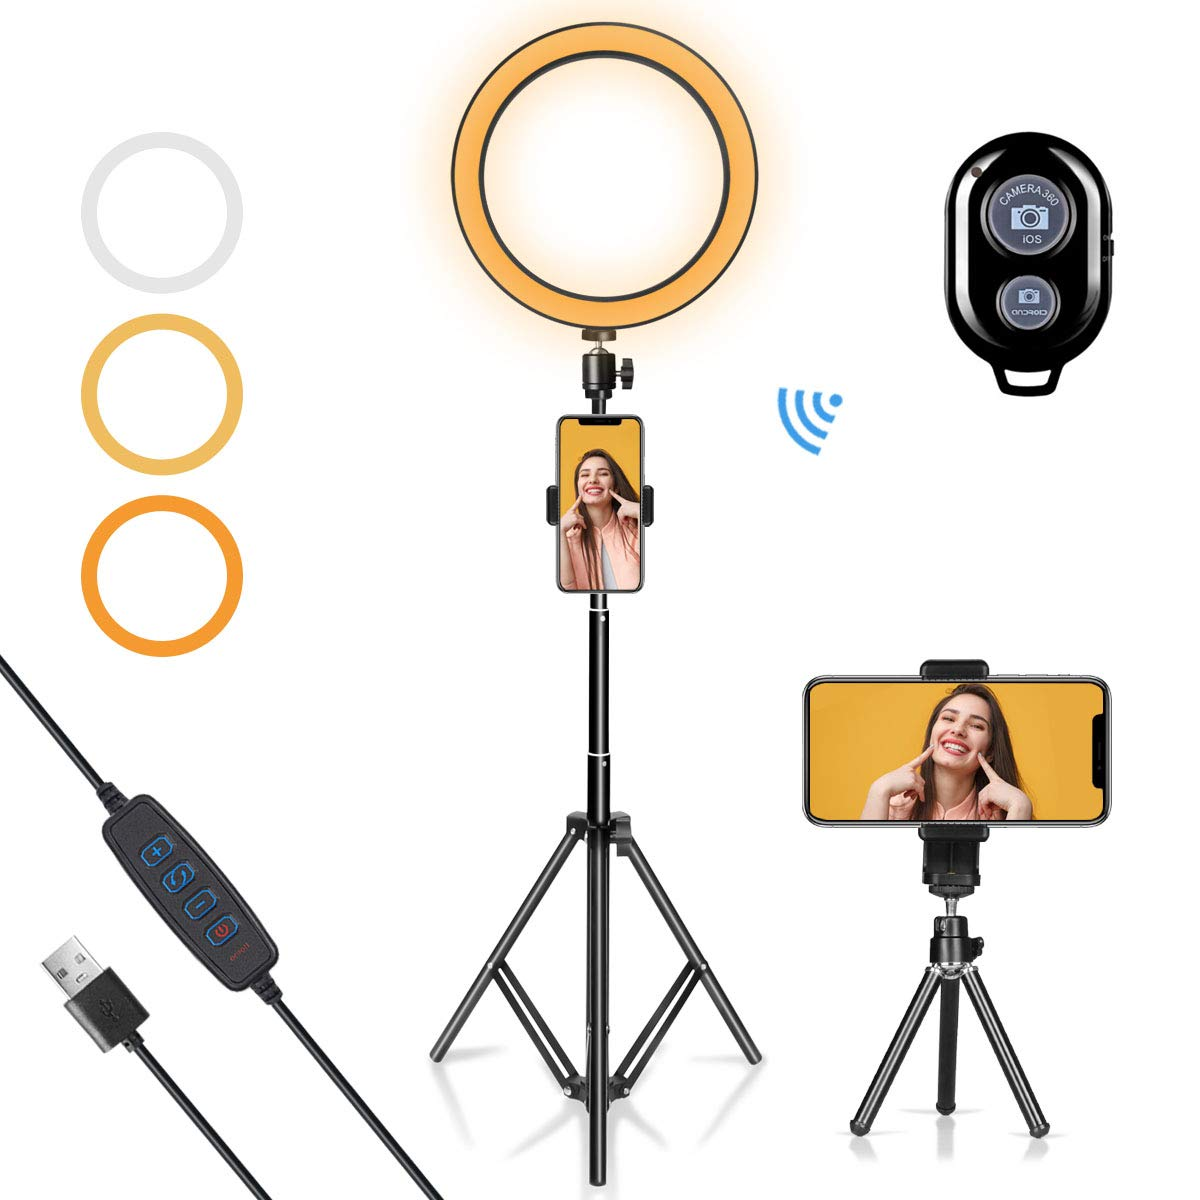 LED Ring Light 10'' with Tripod Stand & Phone Holder for YouTube Video, Desk Selfie Ring Light Dimmable for Streaming, Makeup, Photography Compatible with iPhone Android by AIXPI